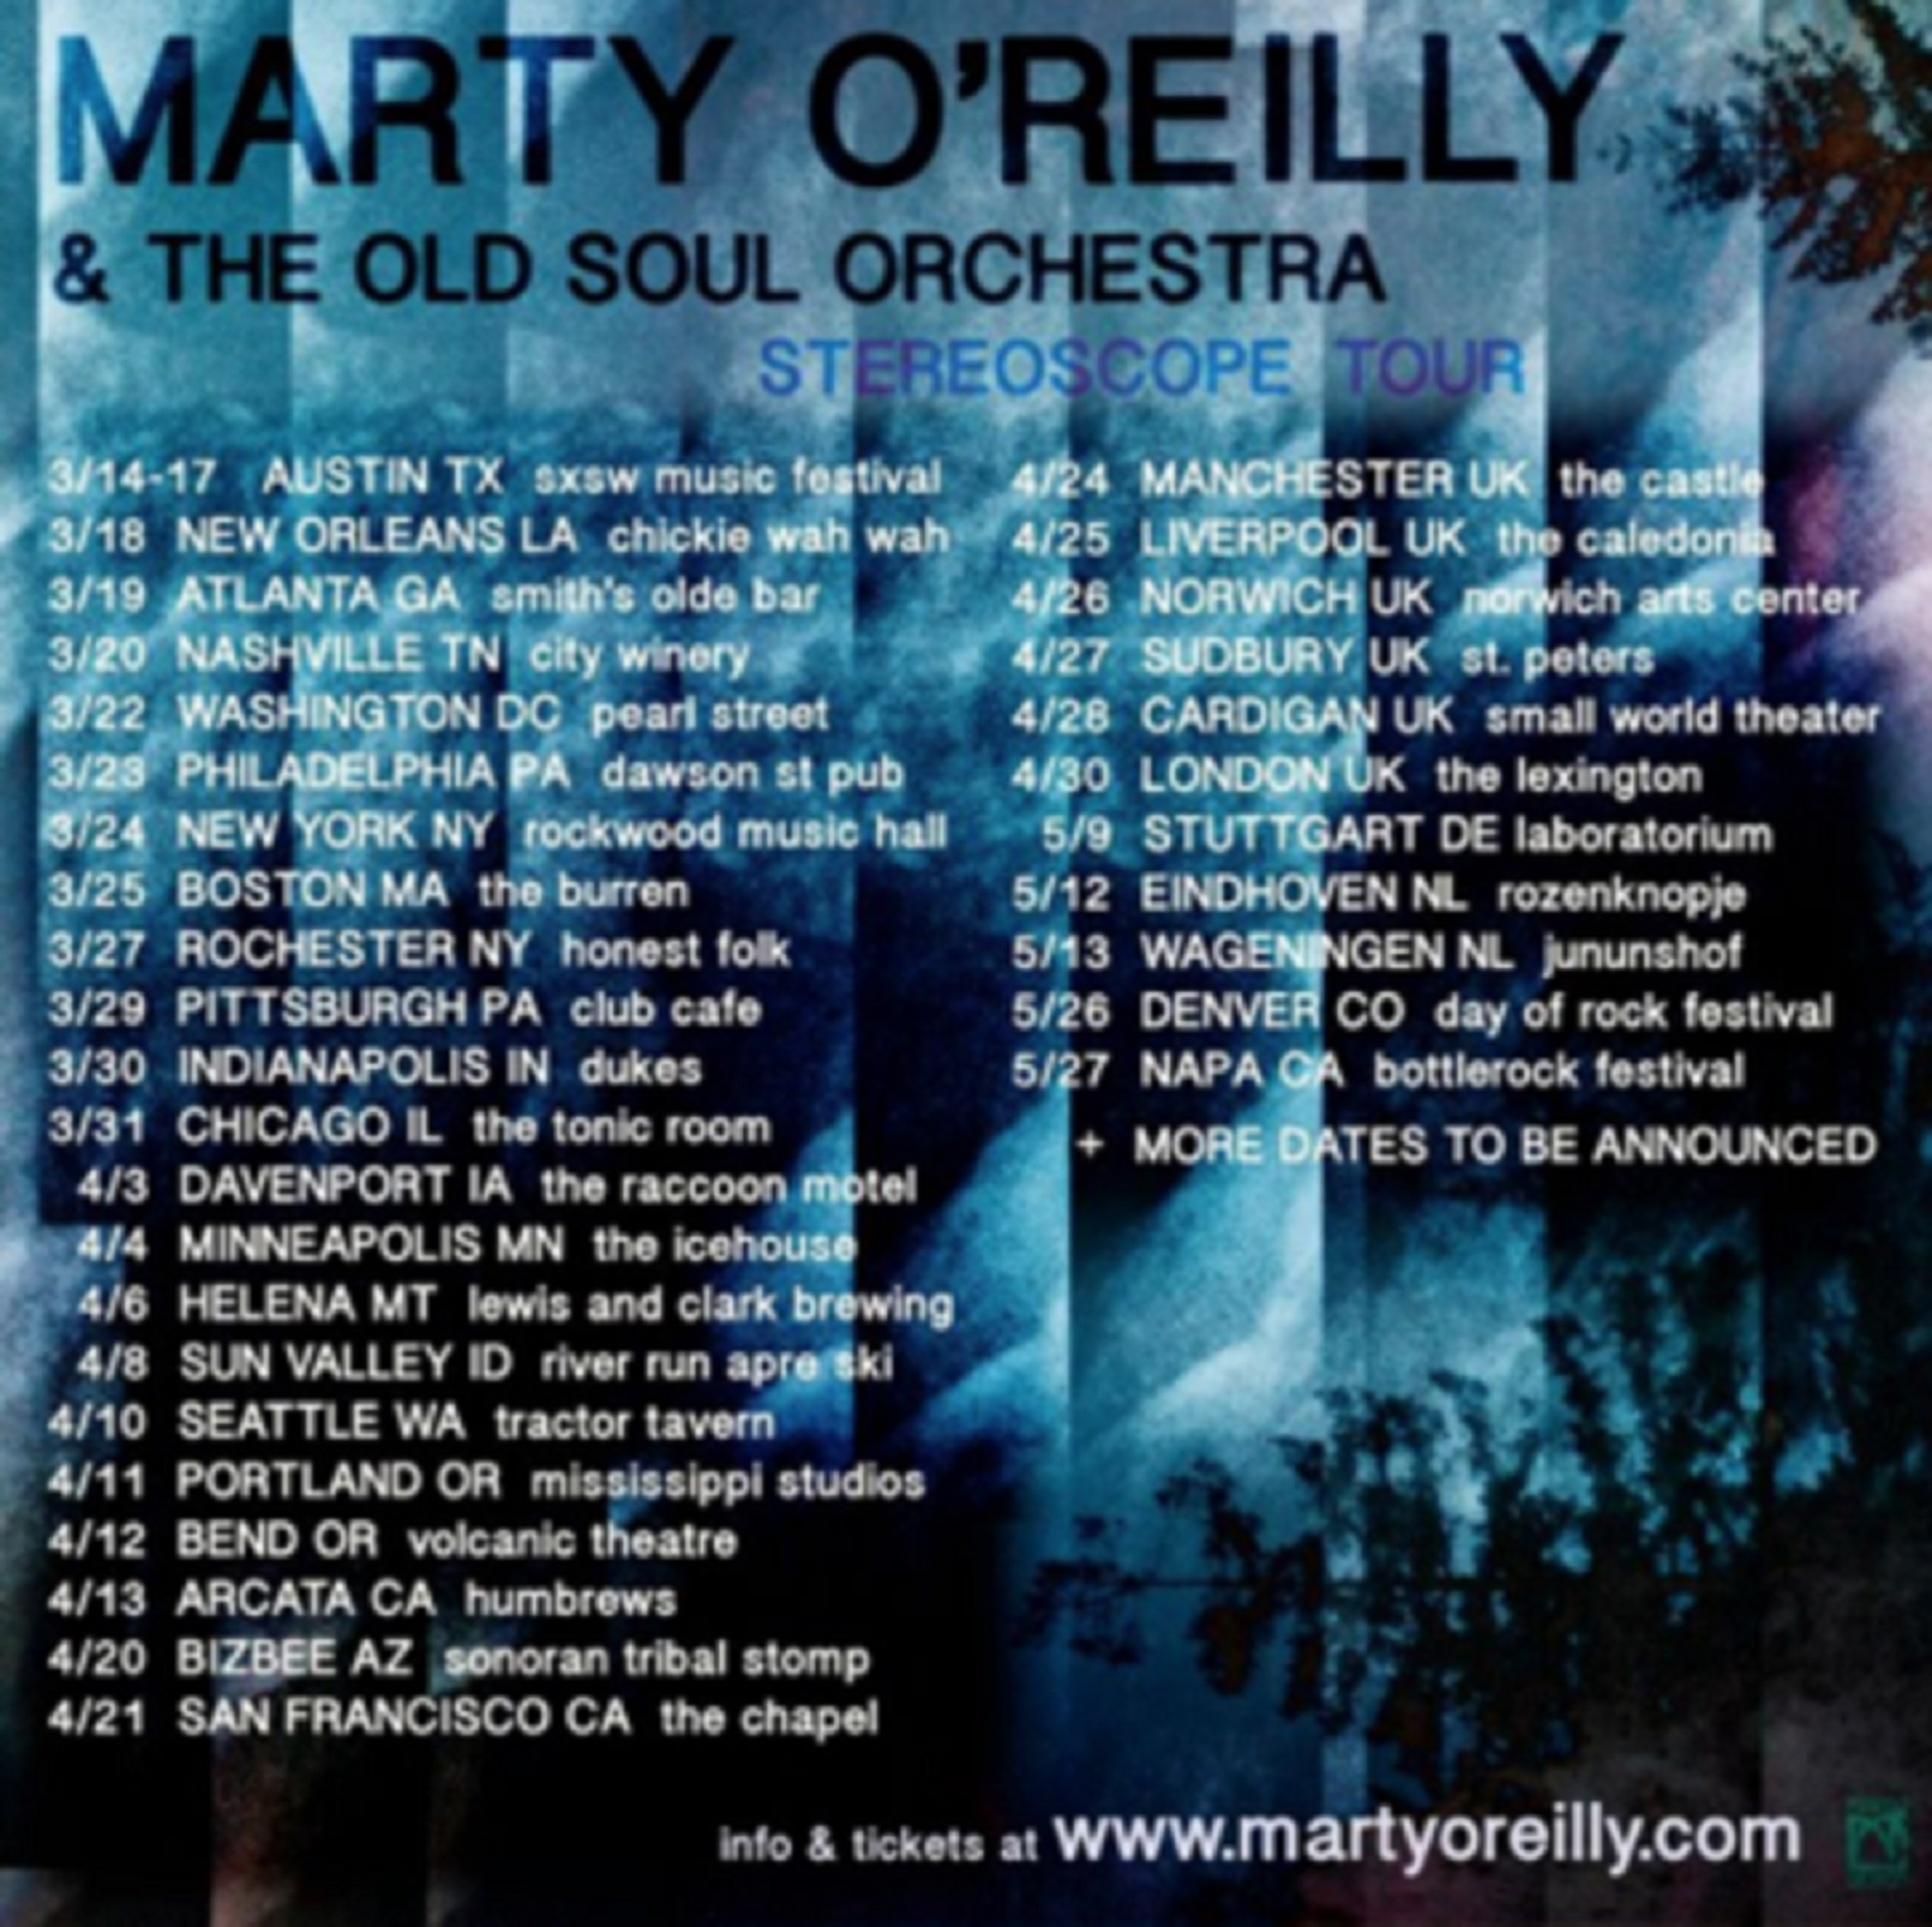 Marty O'Reilly & the Old Soul Orchestra Announce Spring Tour